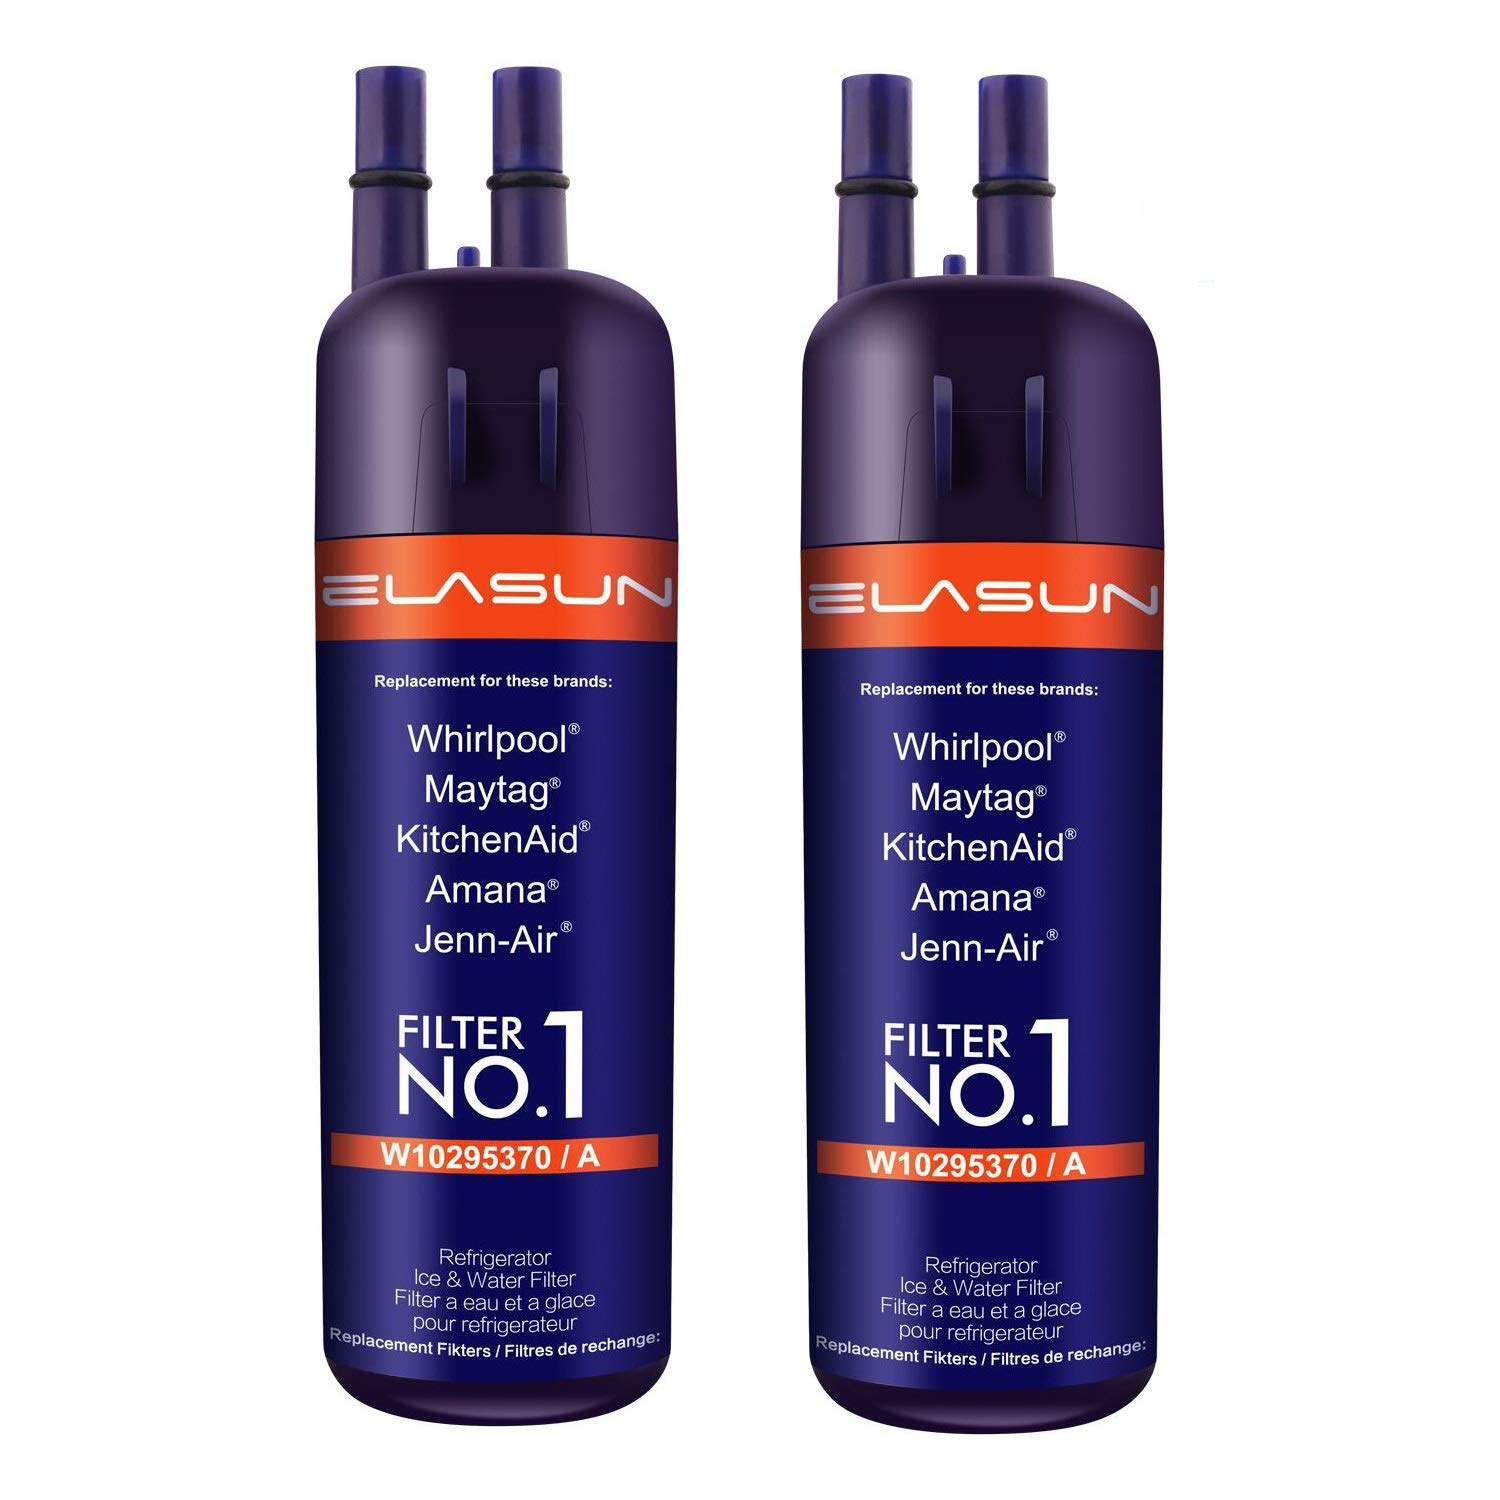 FILTER 1 Use Kenmore 9081 9930 Refrigerator Water Filter have 6 Months Life 2-PACK